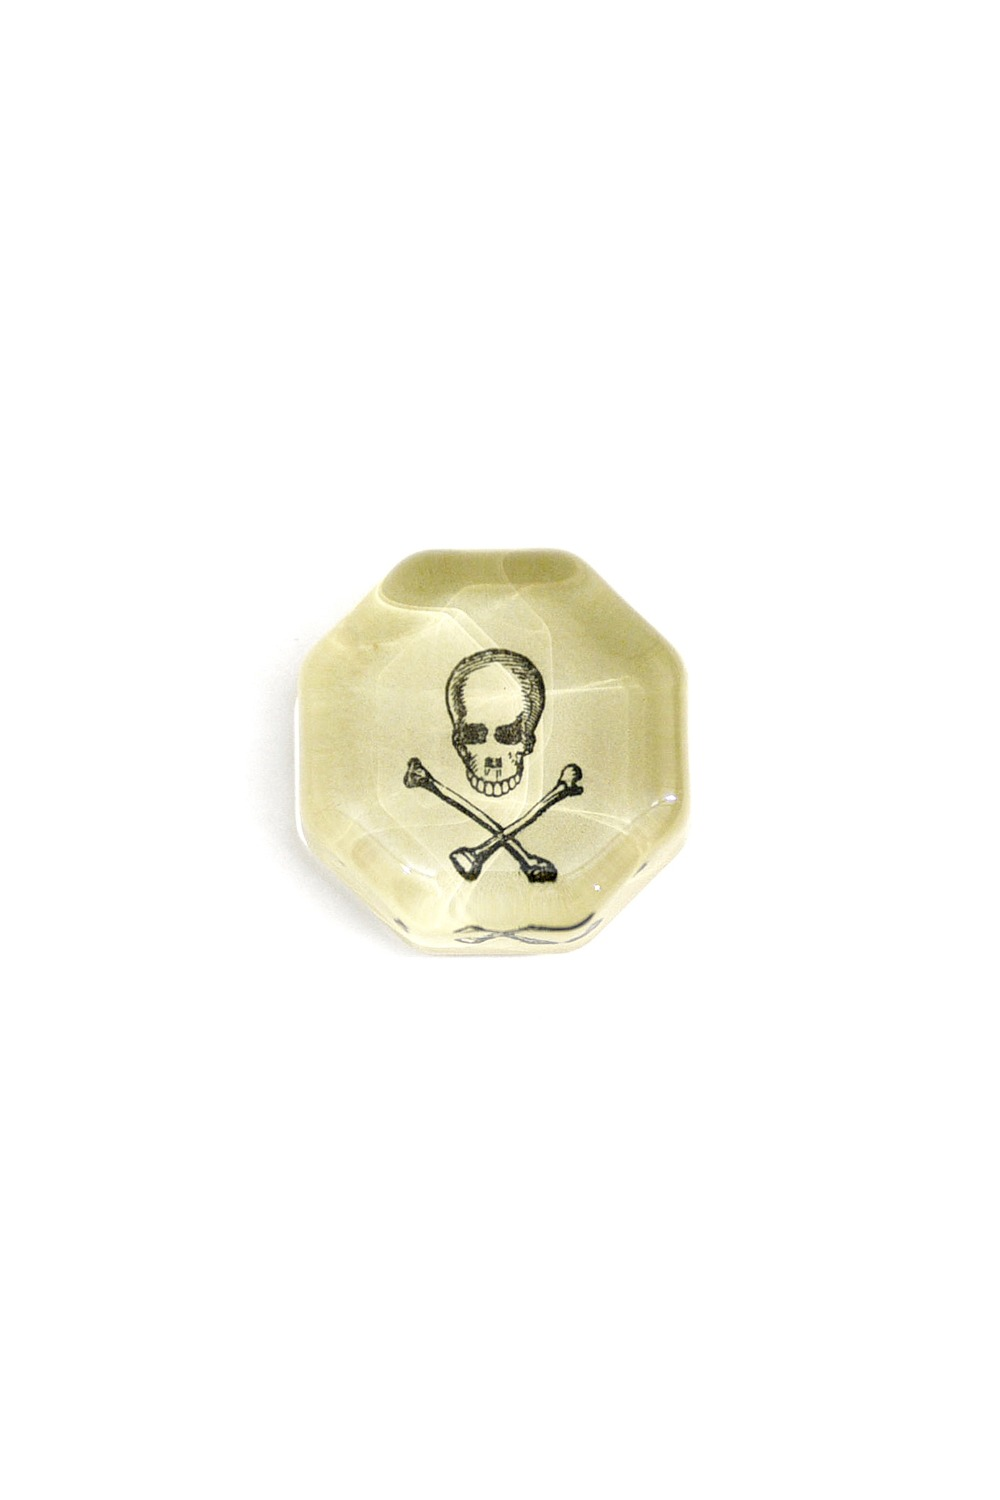 Rectangular Charm Paperweights - Skull with Crossed Bones